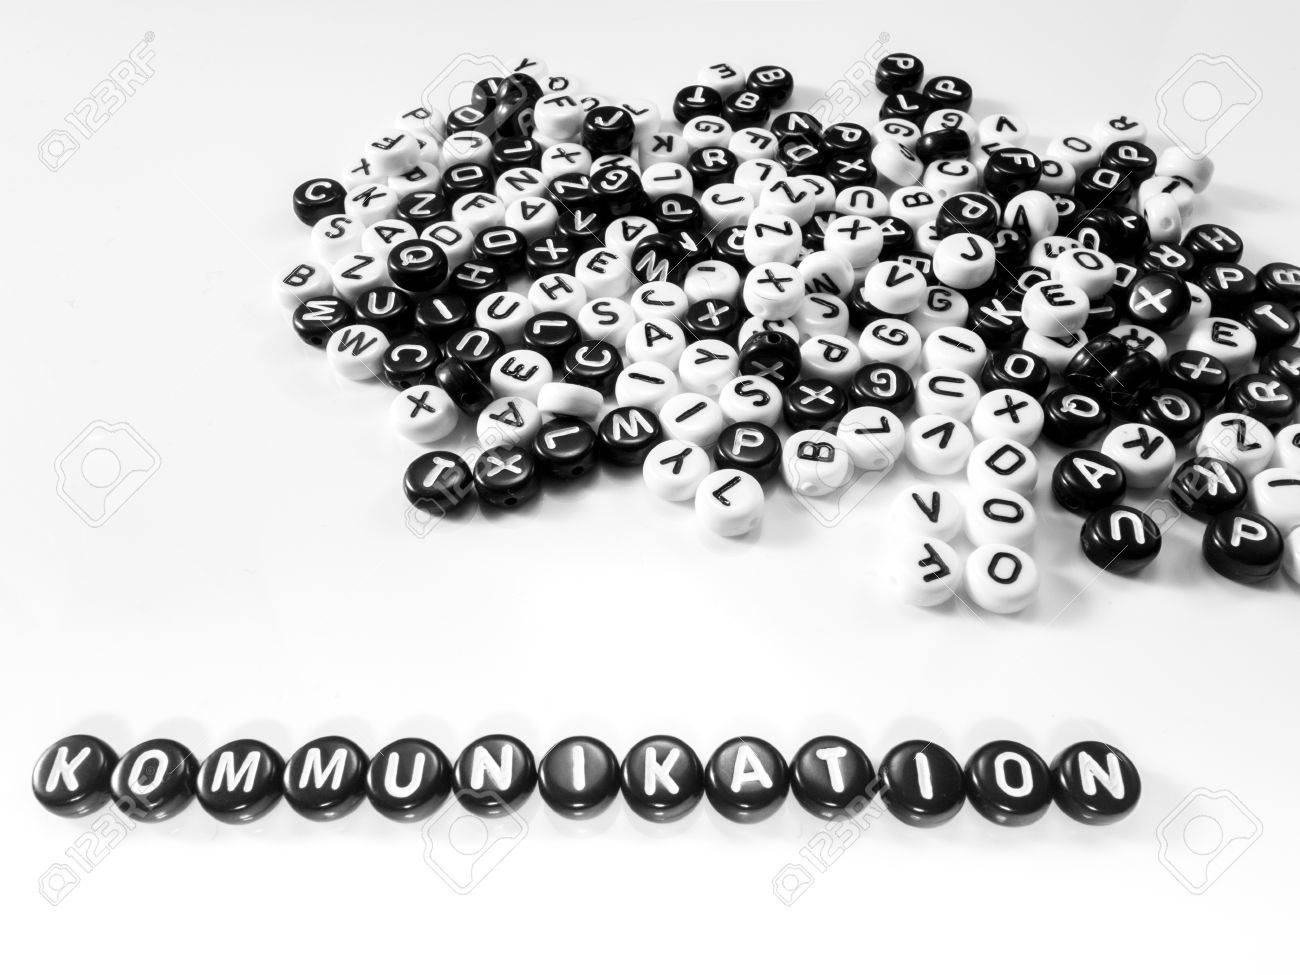 heap of round letters black and white and communication word written in german written by side; kommunikation - 55371378